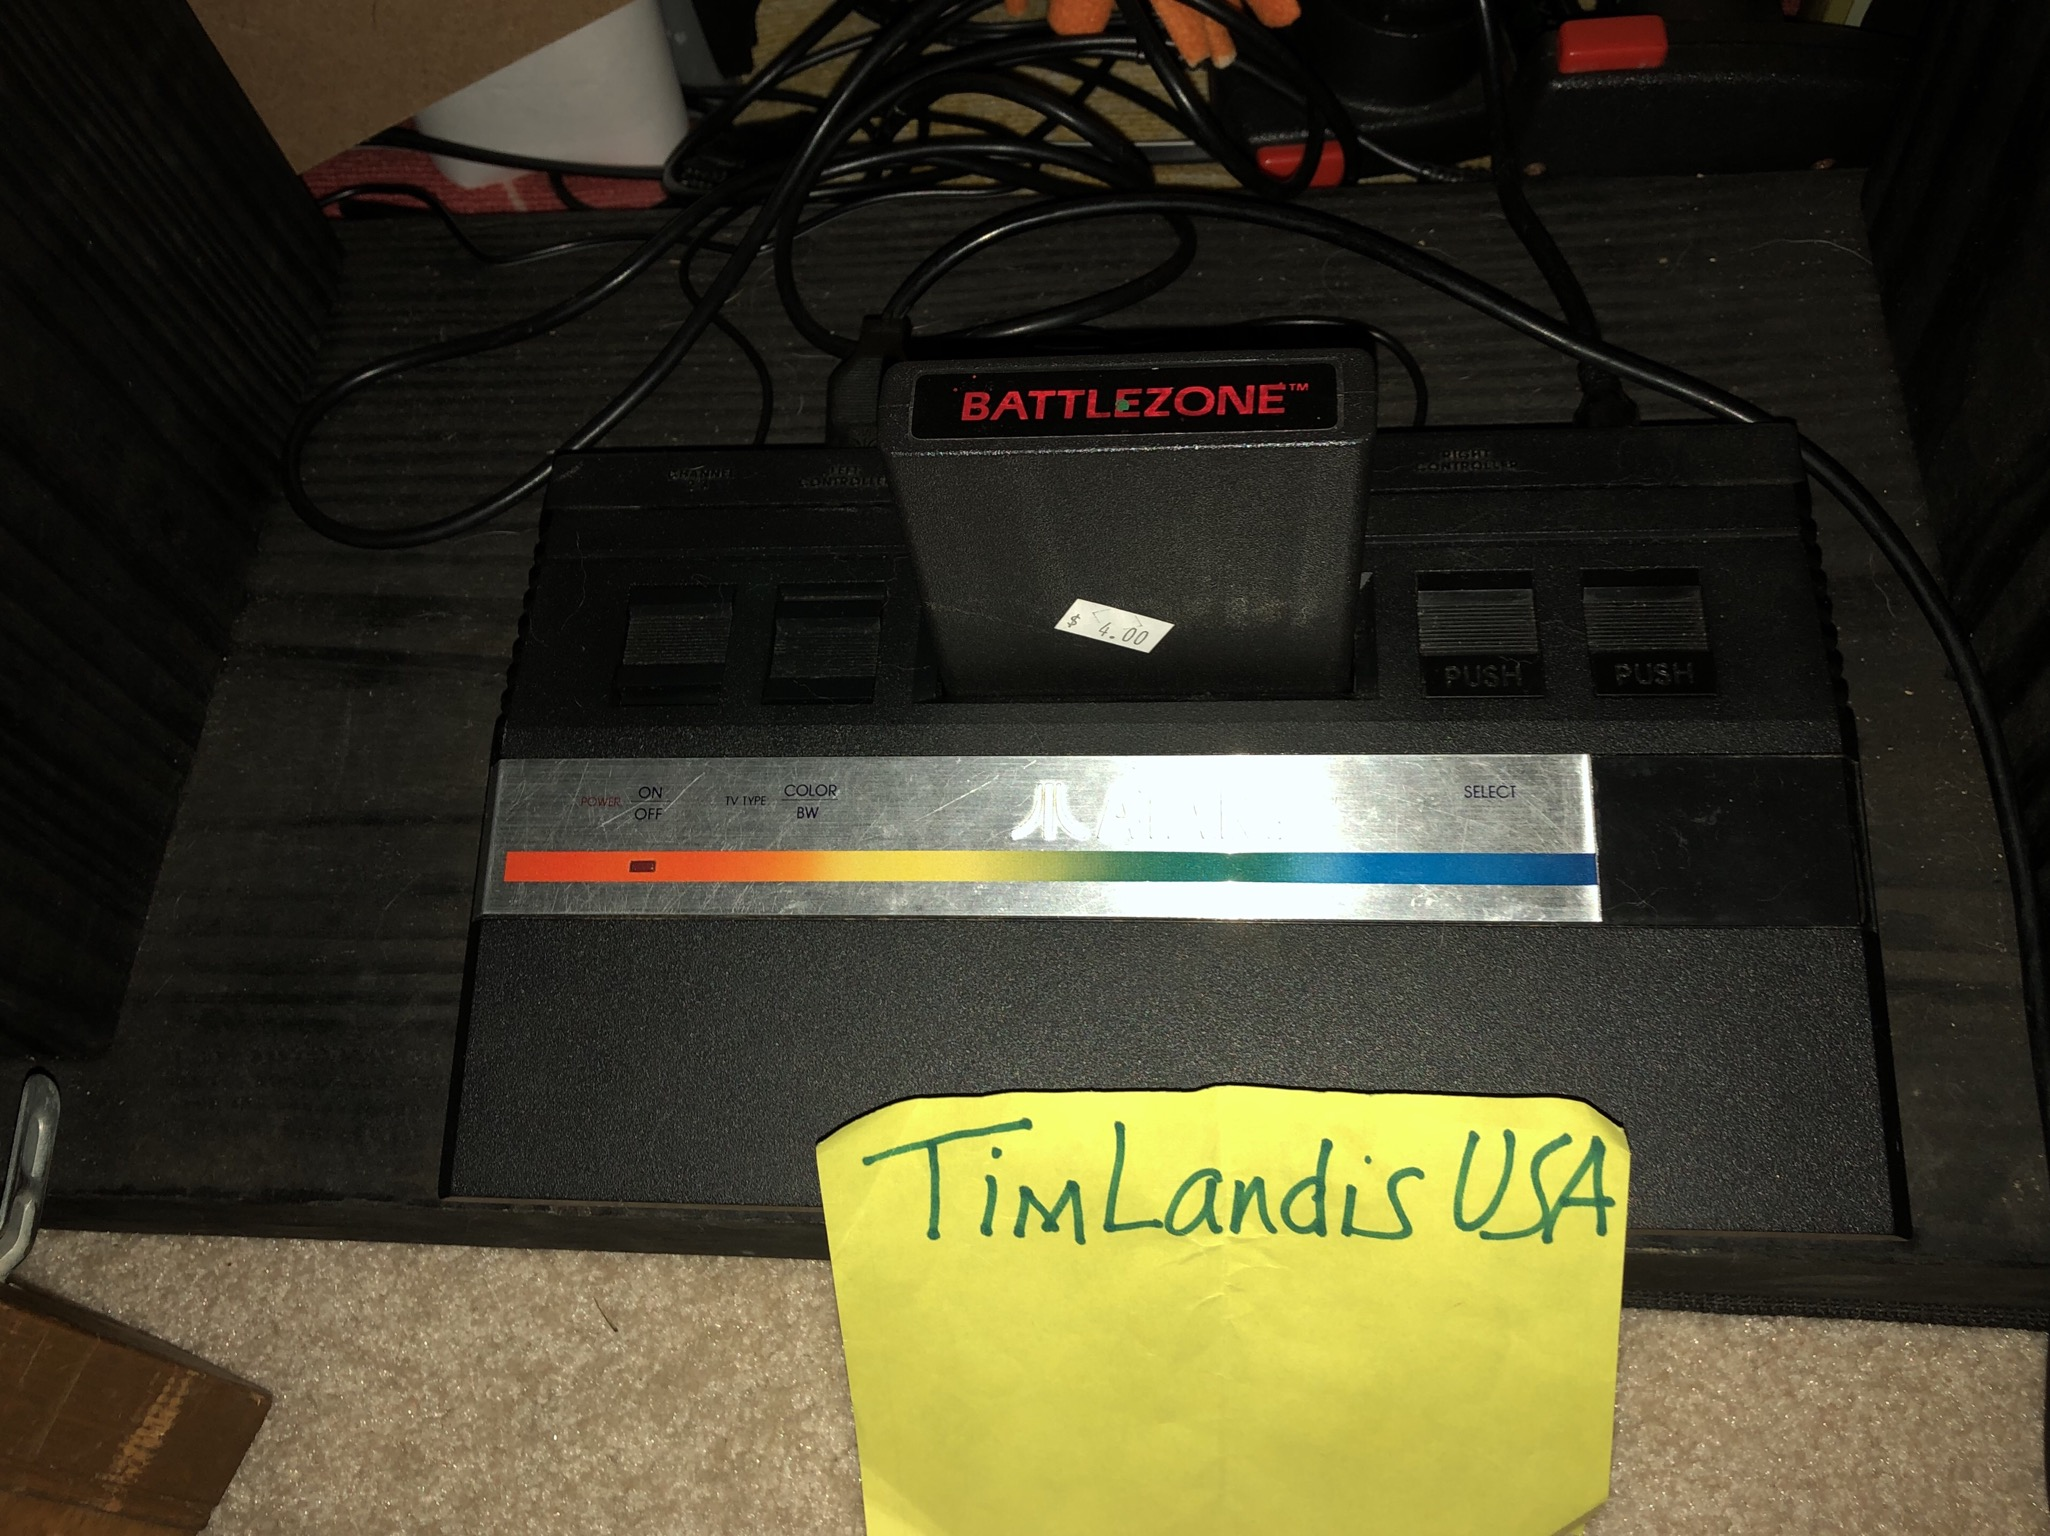 TimLandisUSA: Battlezone (Atari 2600) 75,000 points on 2019-08-10 19:43:01